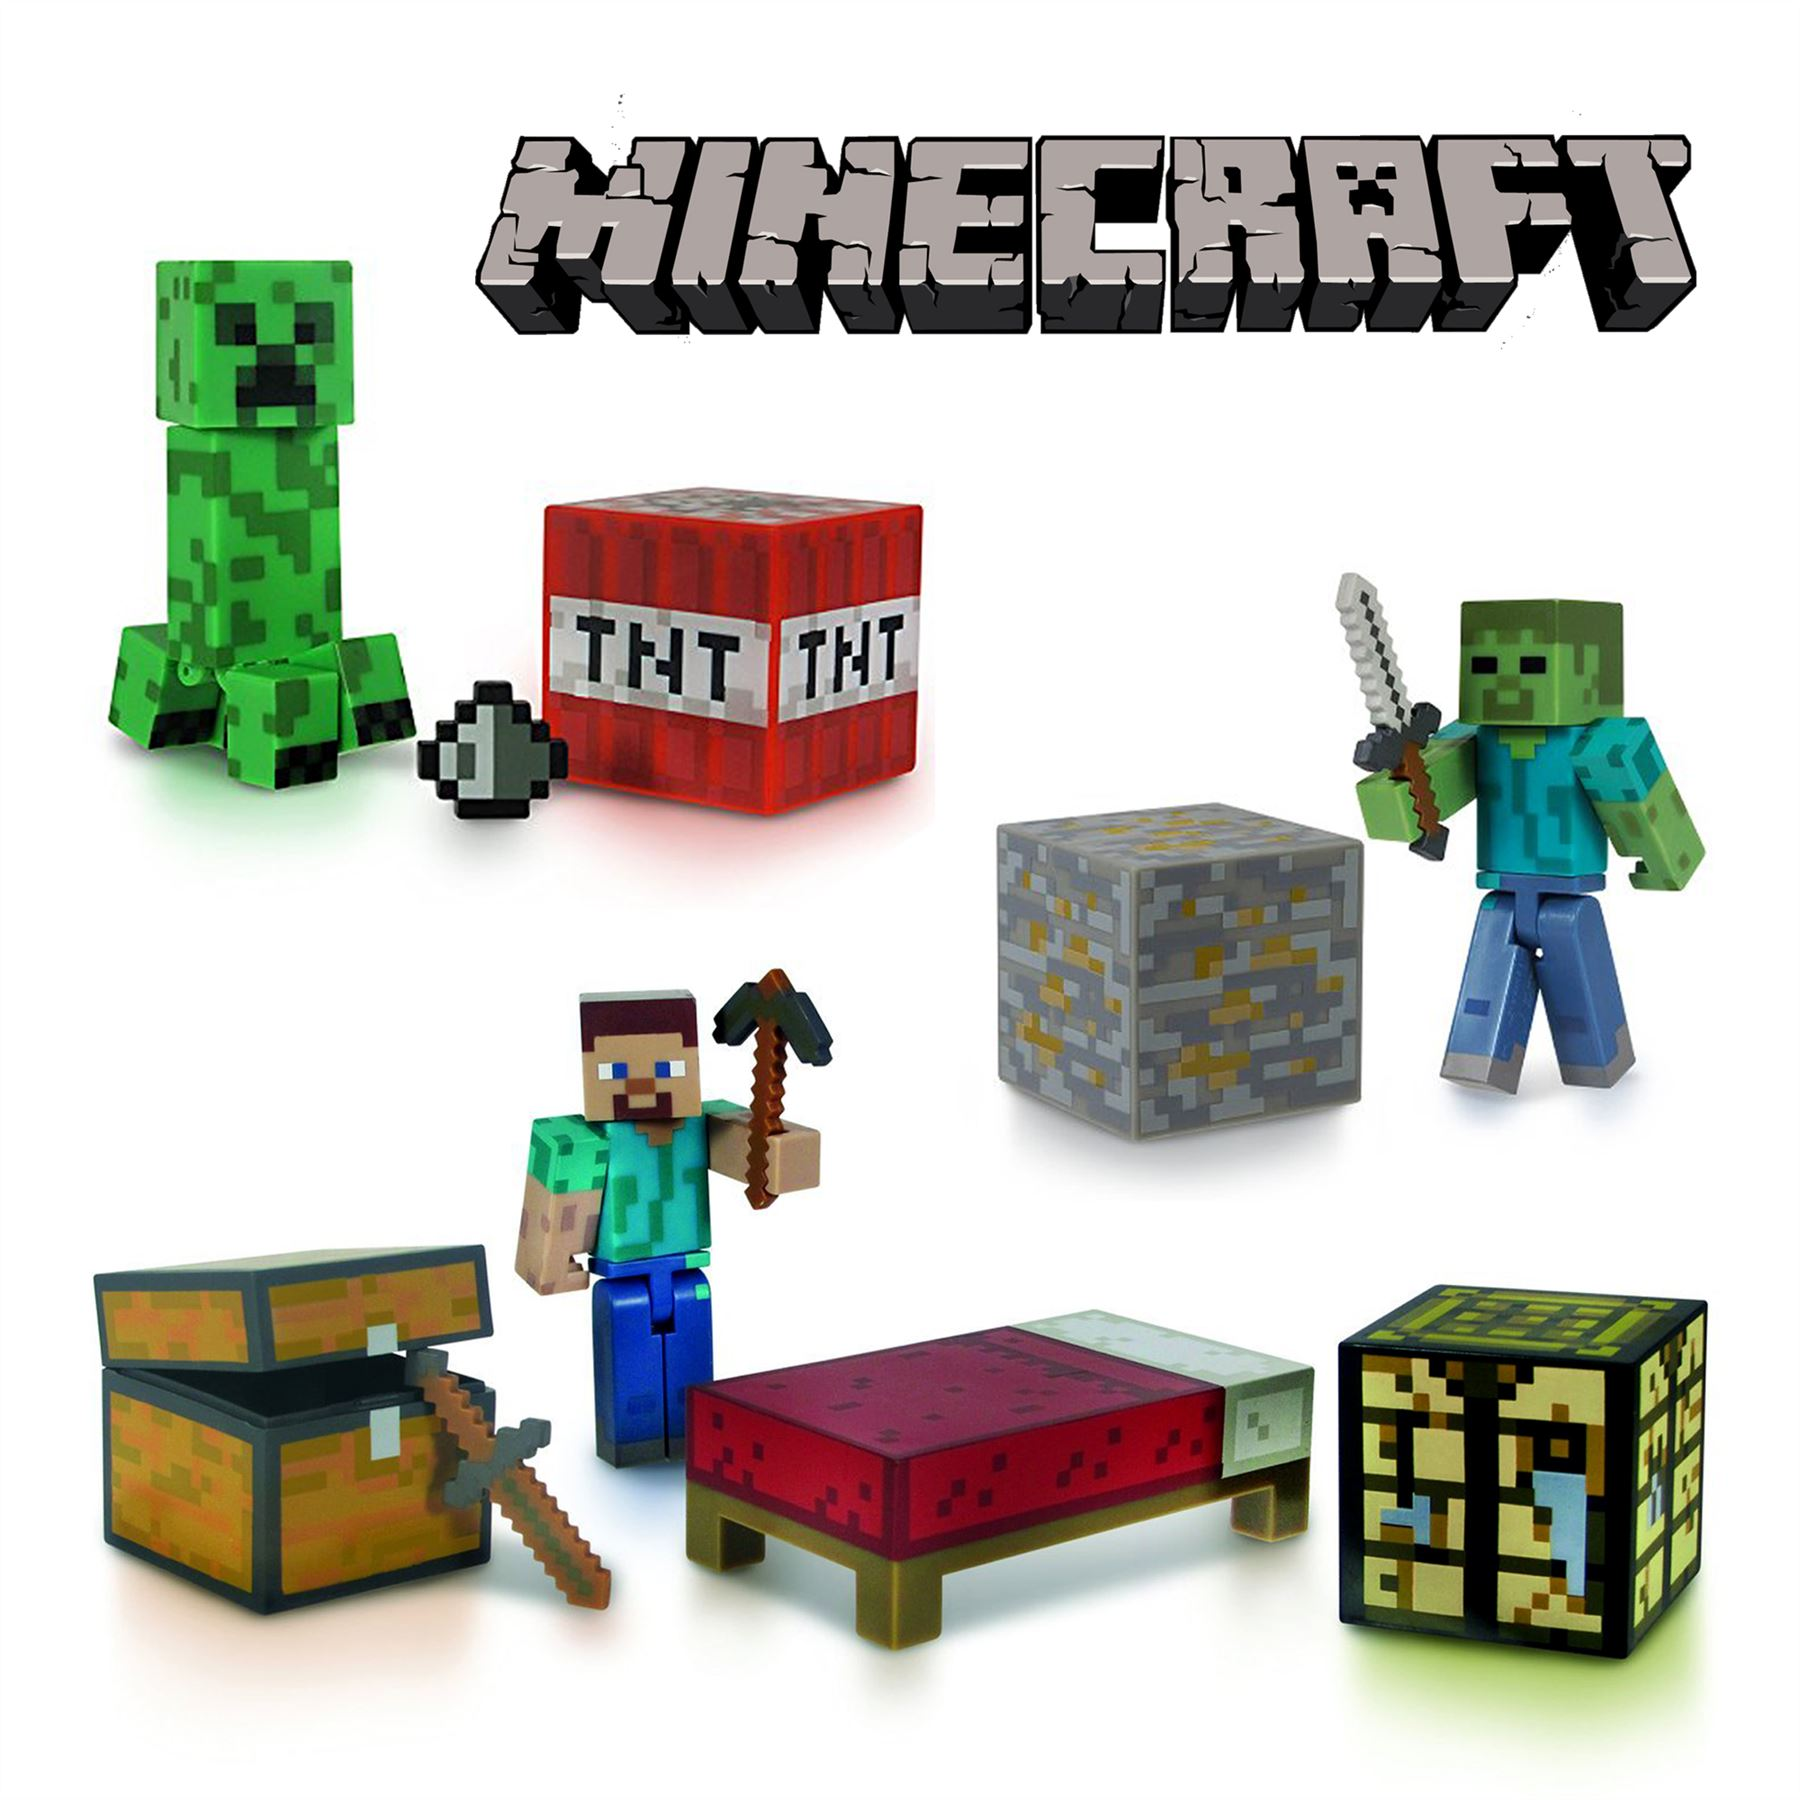 Minecraft Toys And Mini Figures For Kids : Genuine minecraft toy sets zombie creeper survival